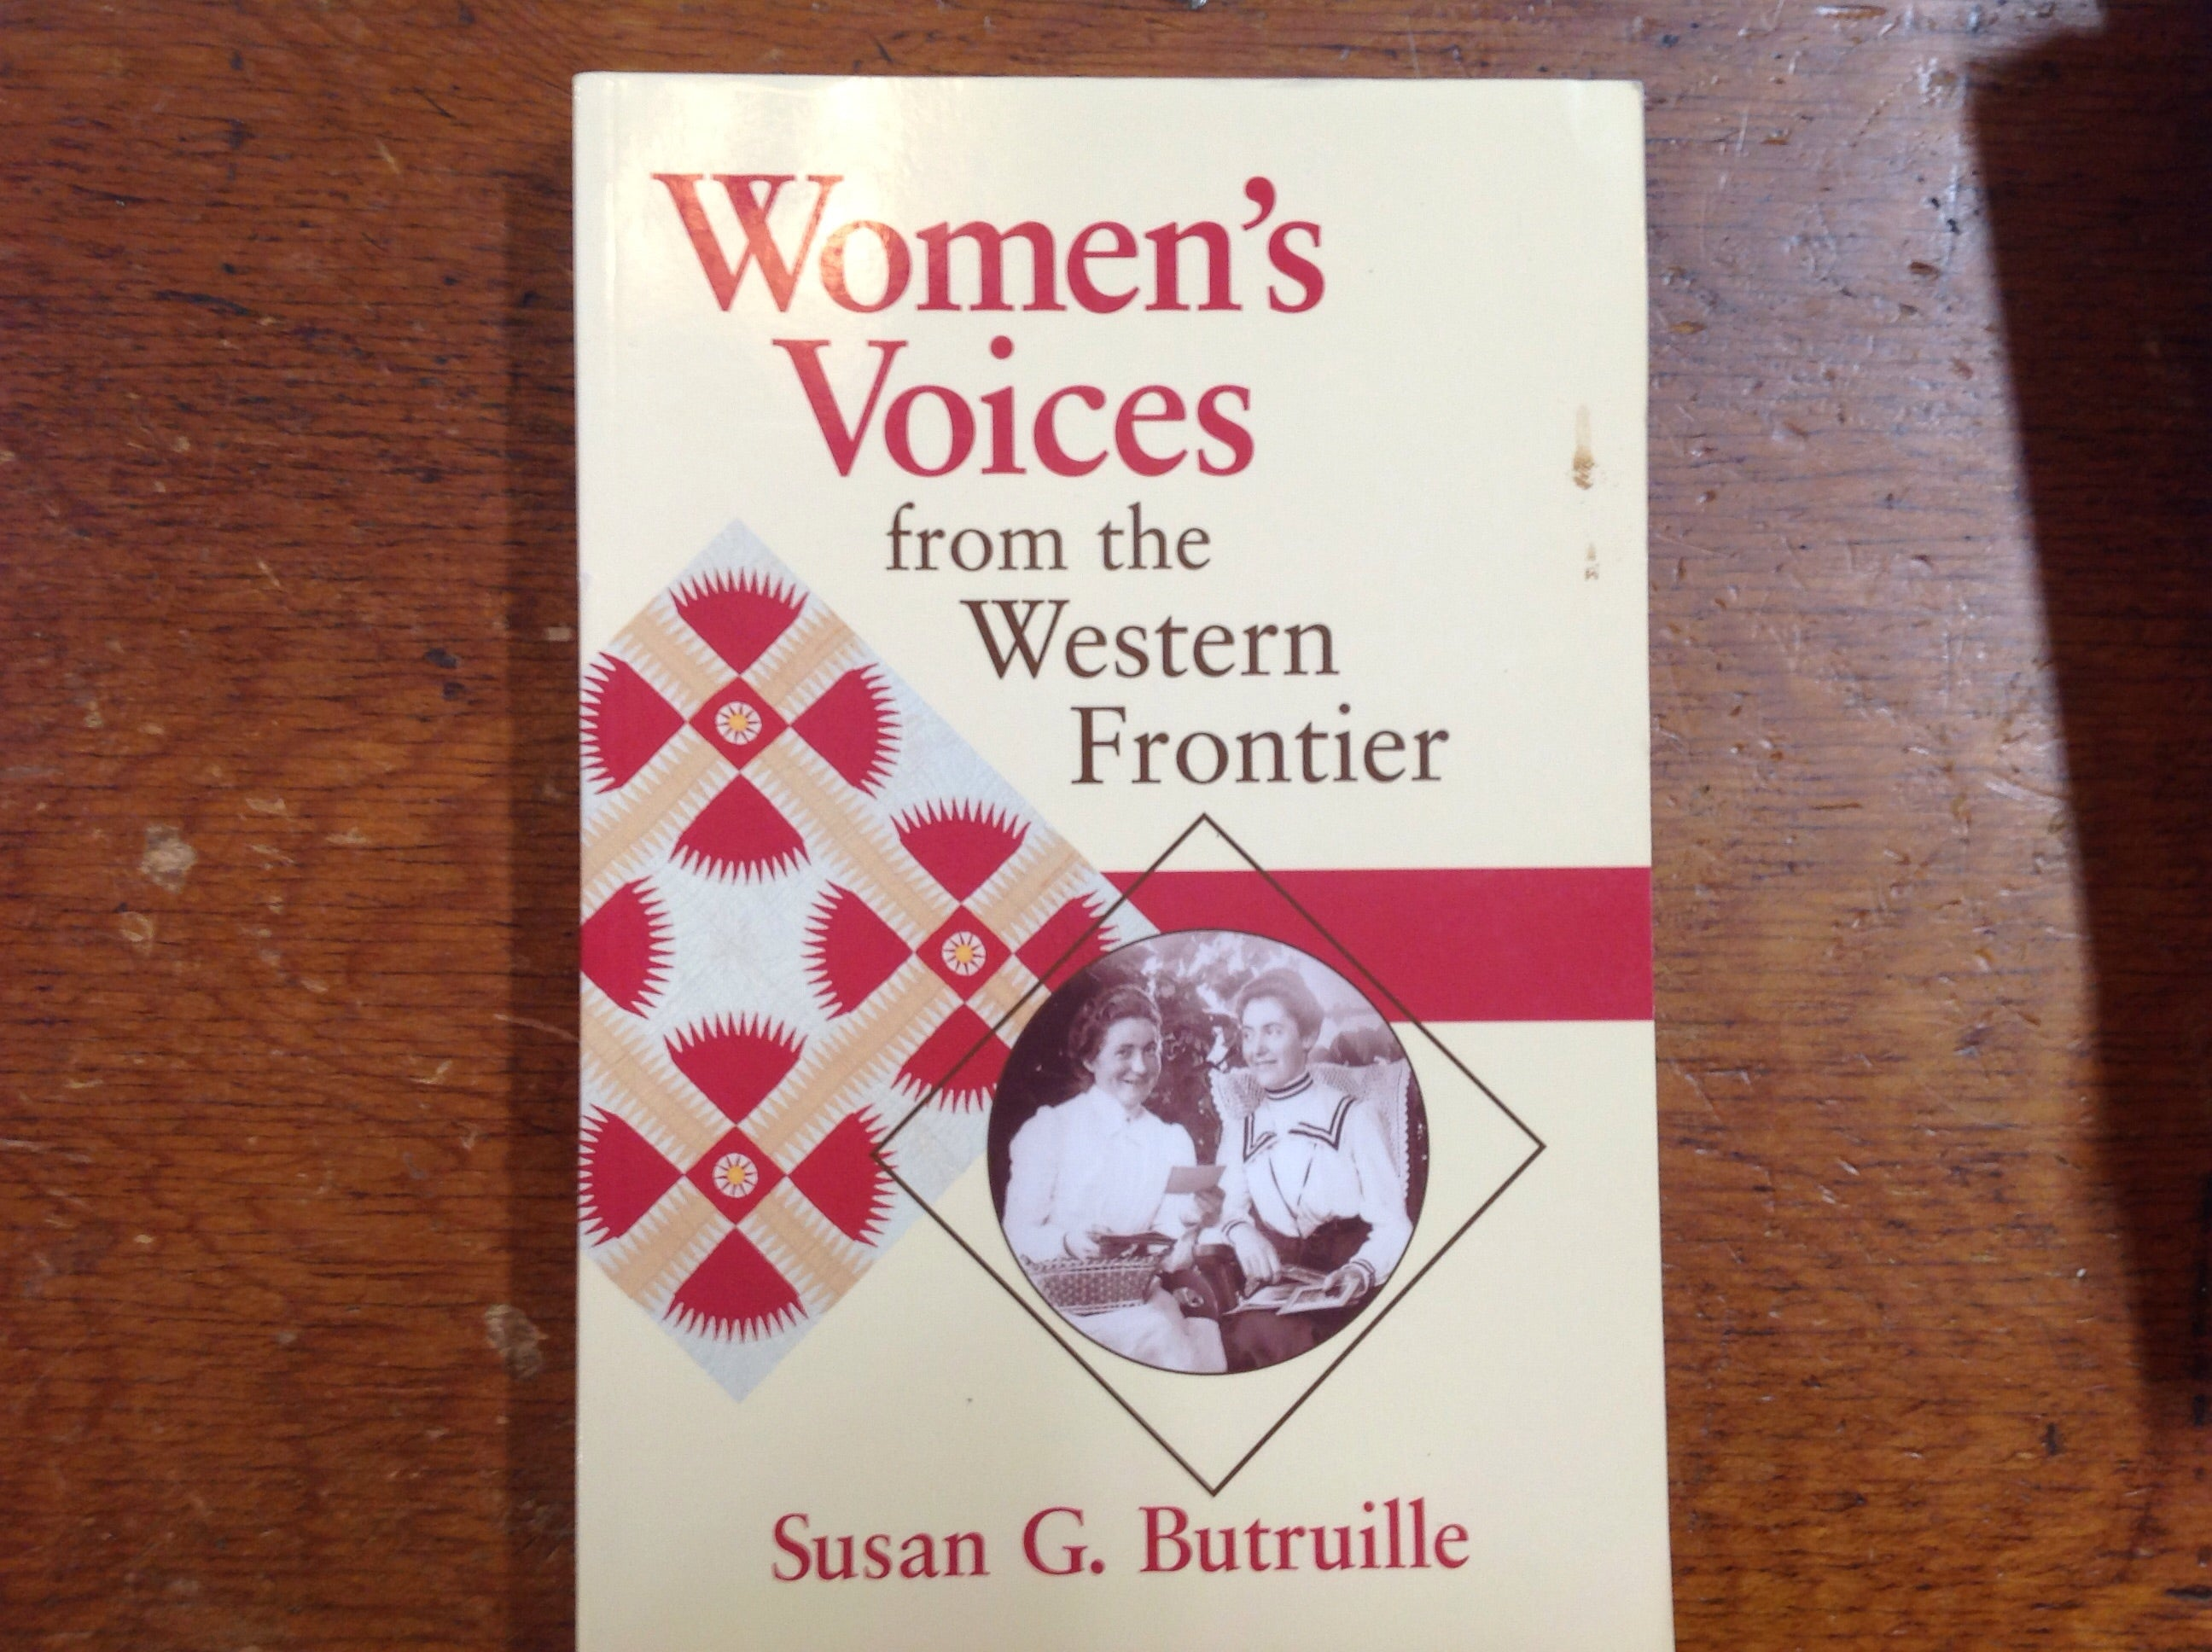 BOOKS - Women's Voices from the Western Frontier